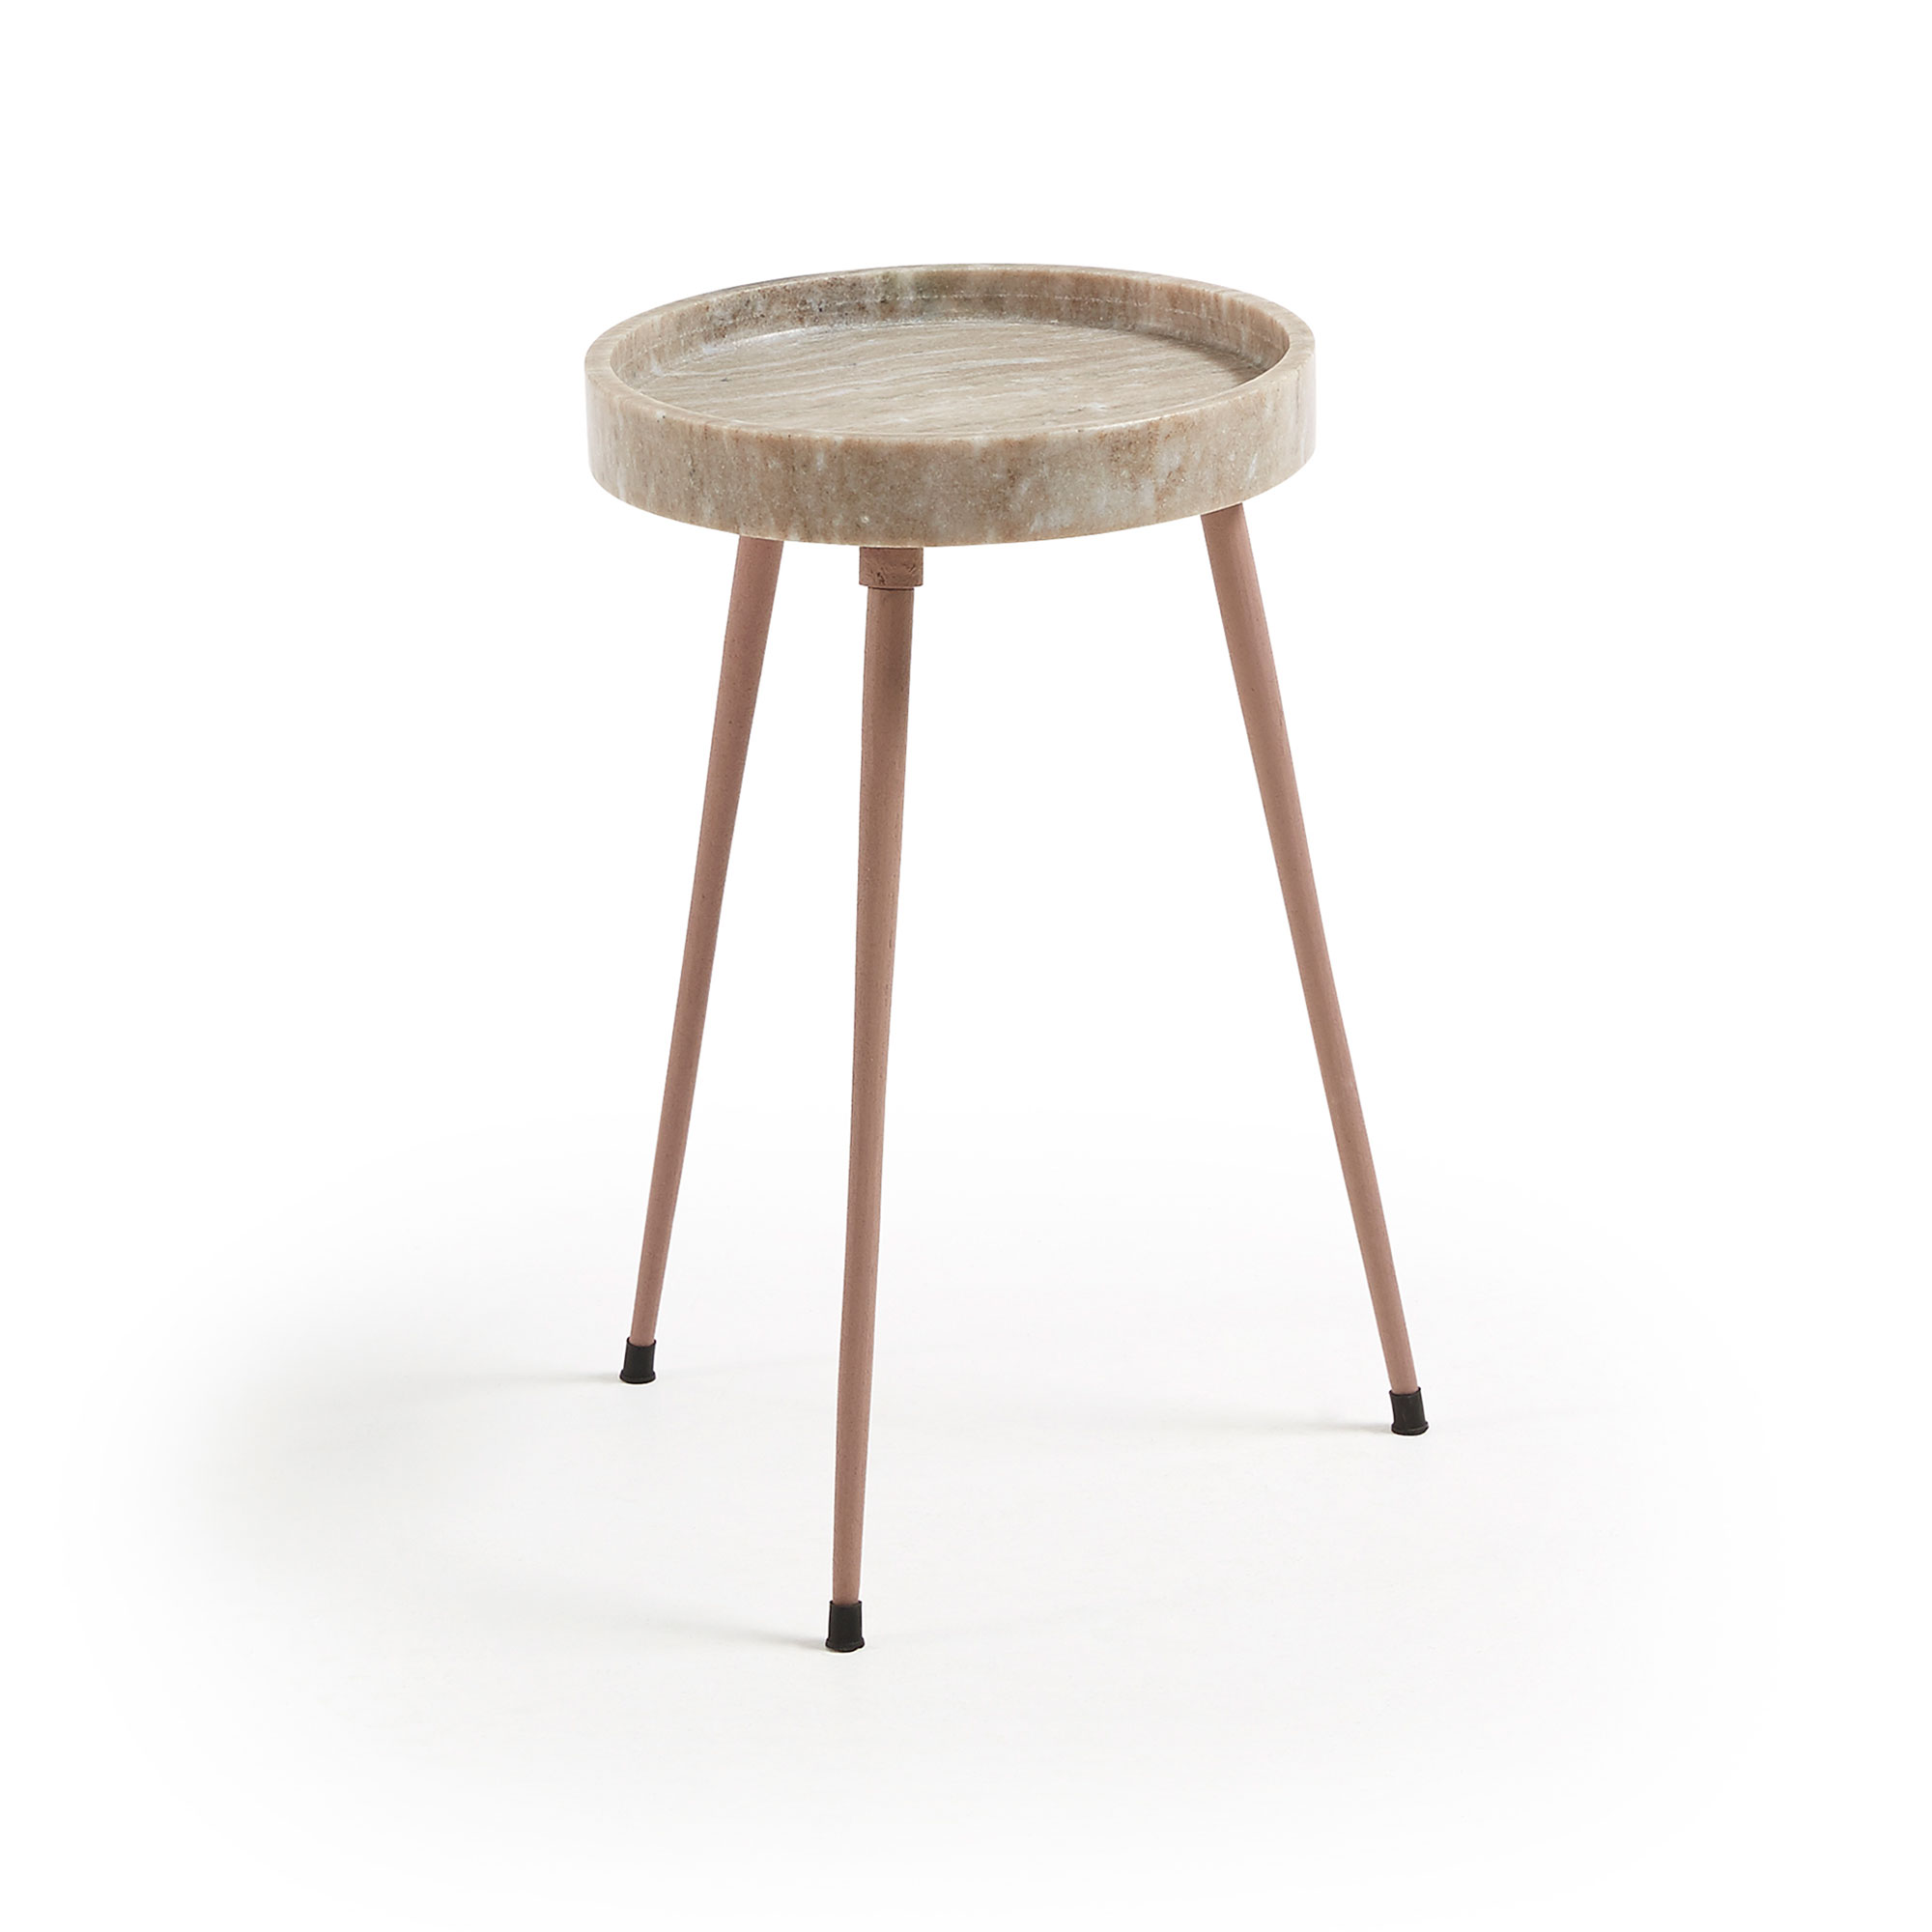 Kave home - table d'appoint rubie Ø 32 cm beige